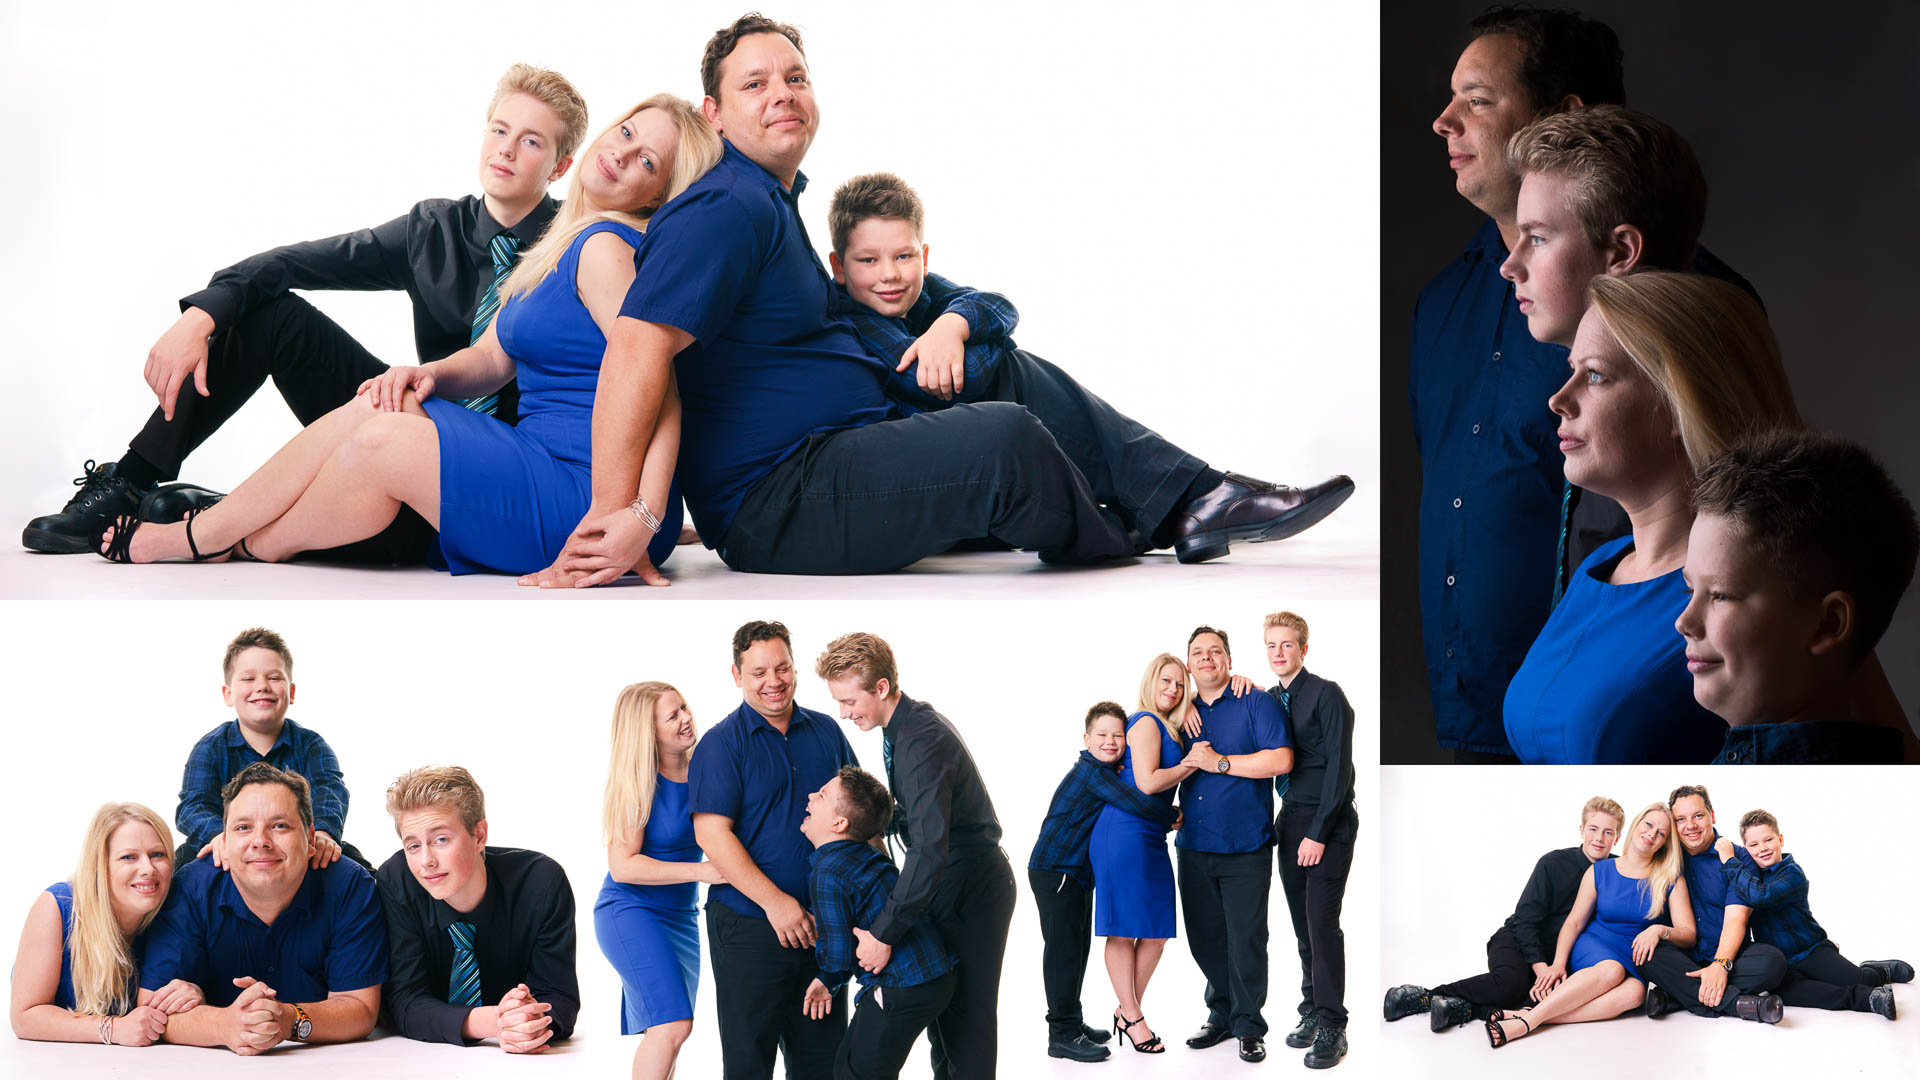 family photo sessions, Southampton, Hampshire